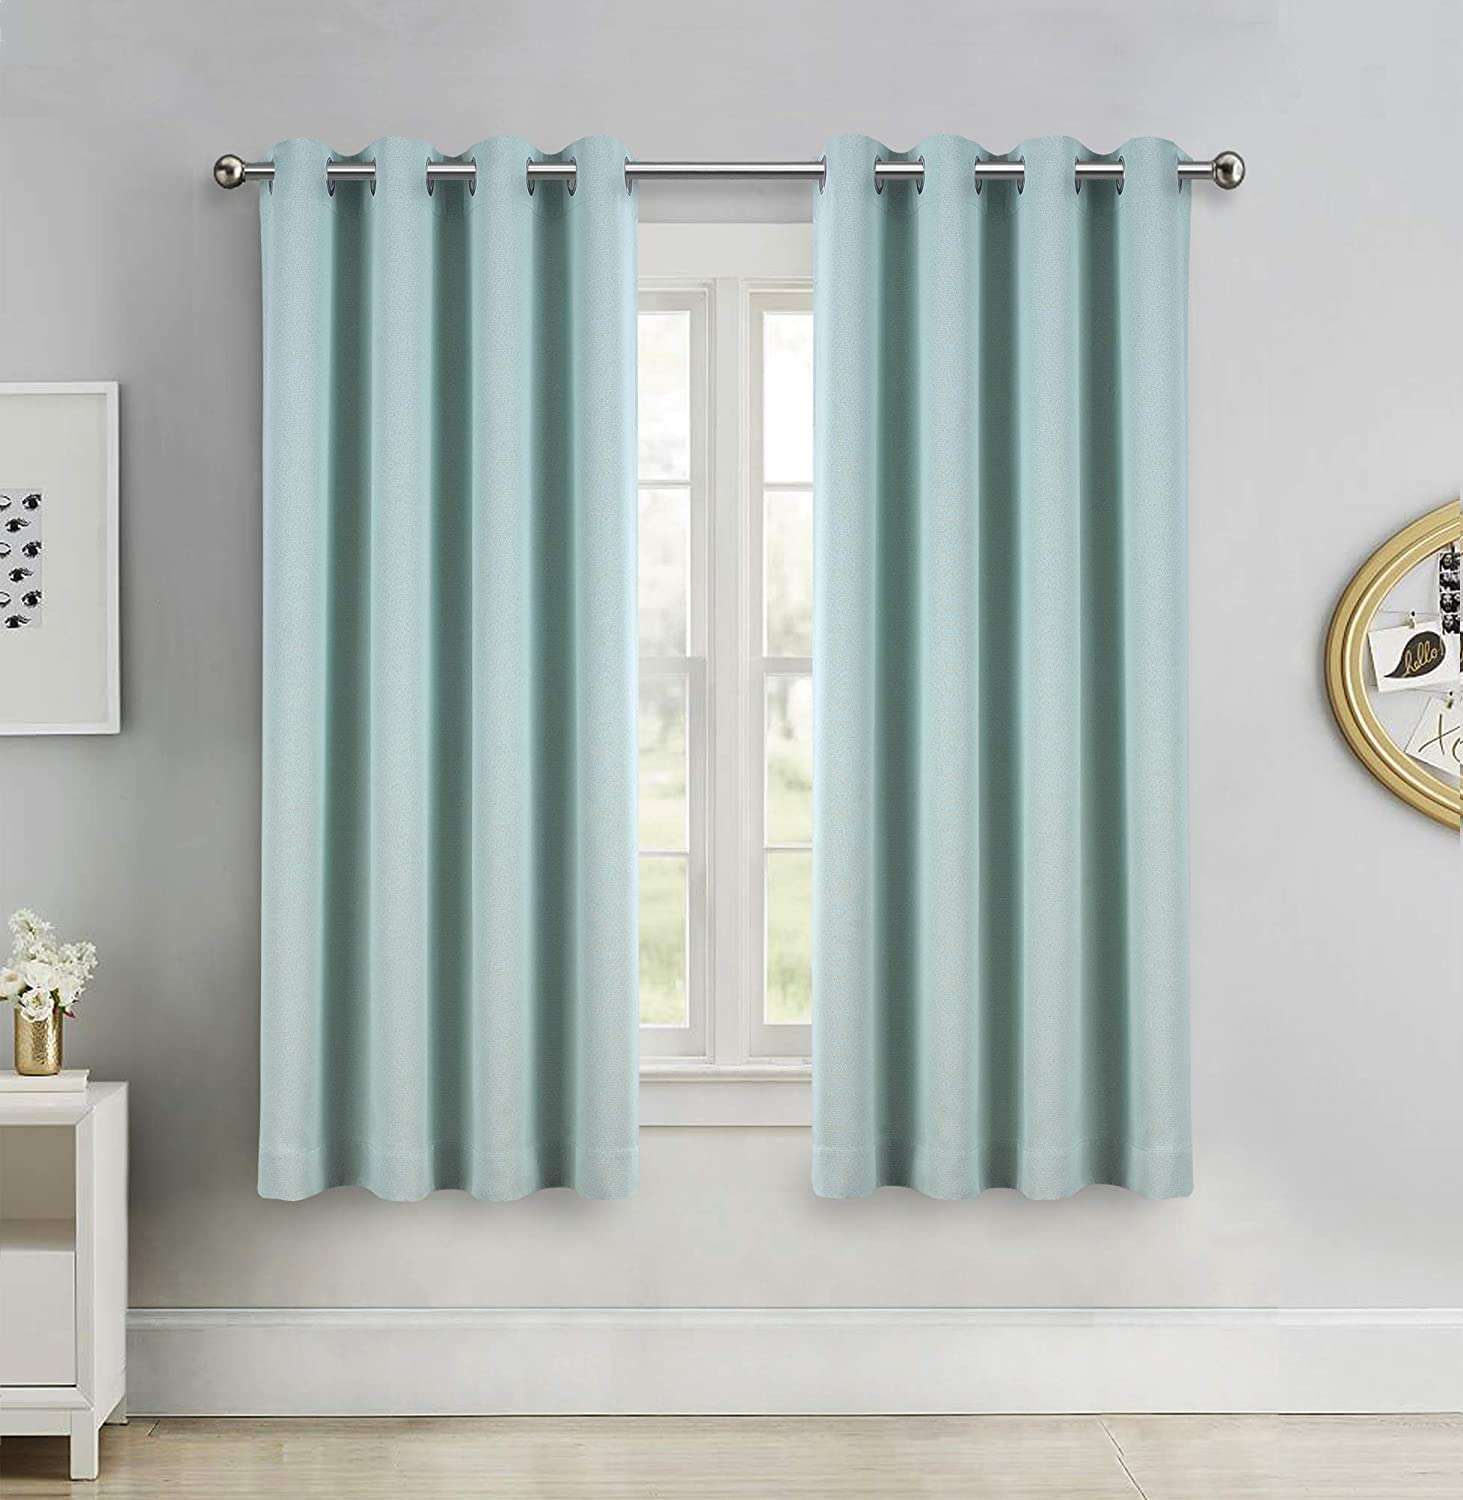 All stores are sold SINGINGLORY Duck Egg Blue Room Curtains Roo Darkening Regular discount Living for